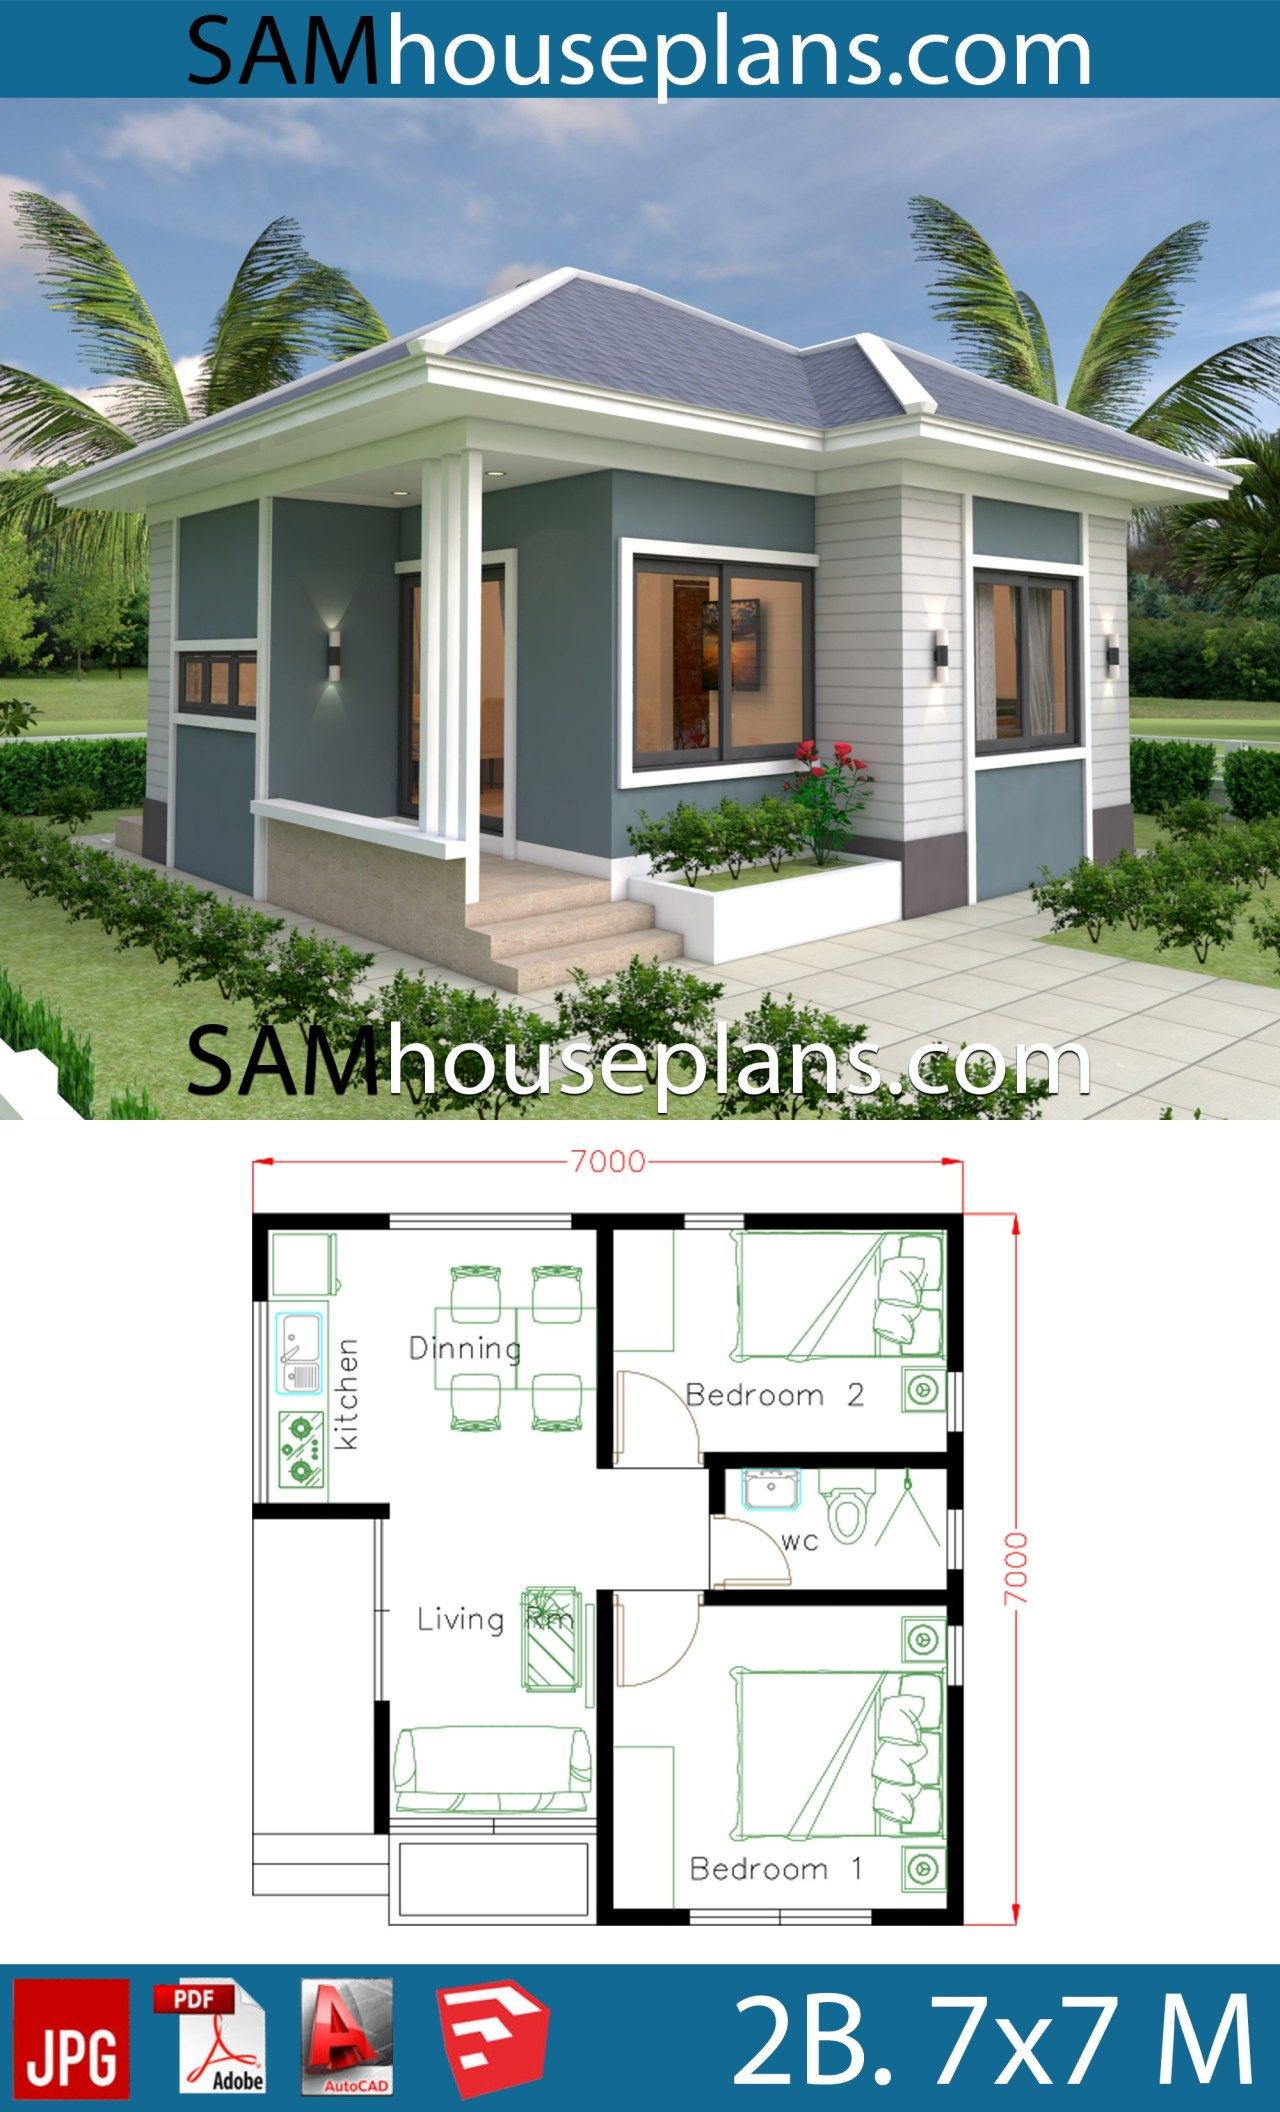 Small House Design Plans 7x7 With 2 Bedrooms House Plans 3d Small House Design Plans Small House Design Philippines Best Small House Designs